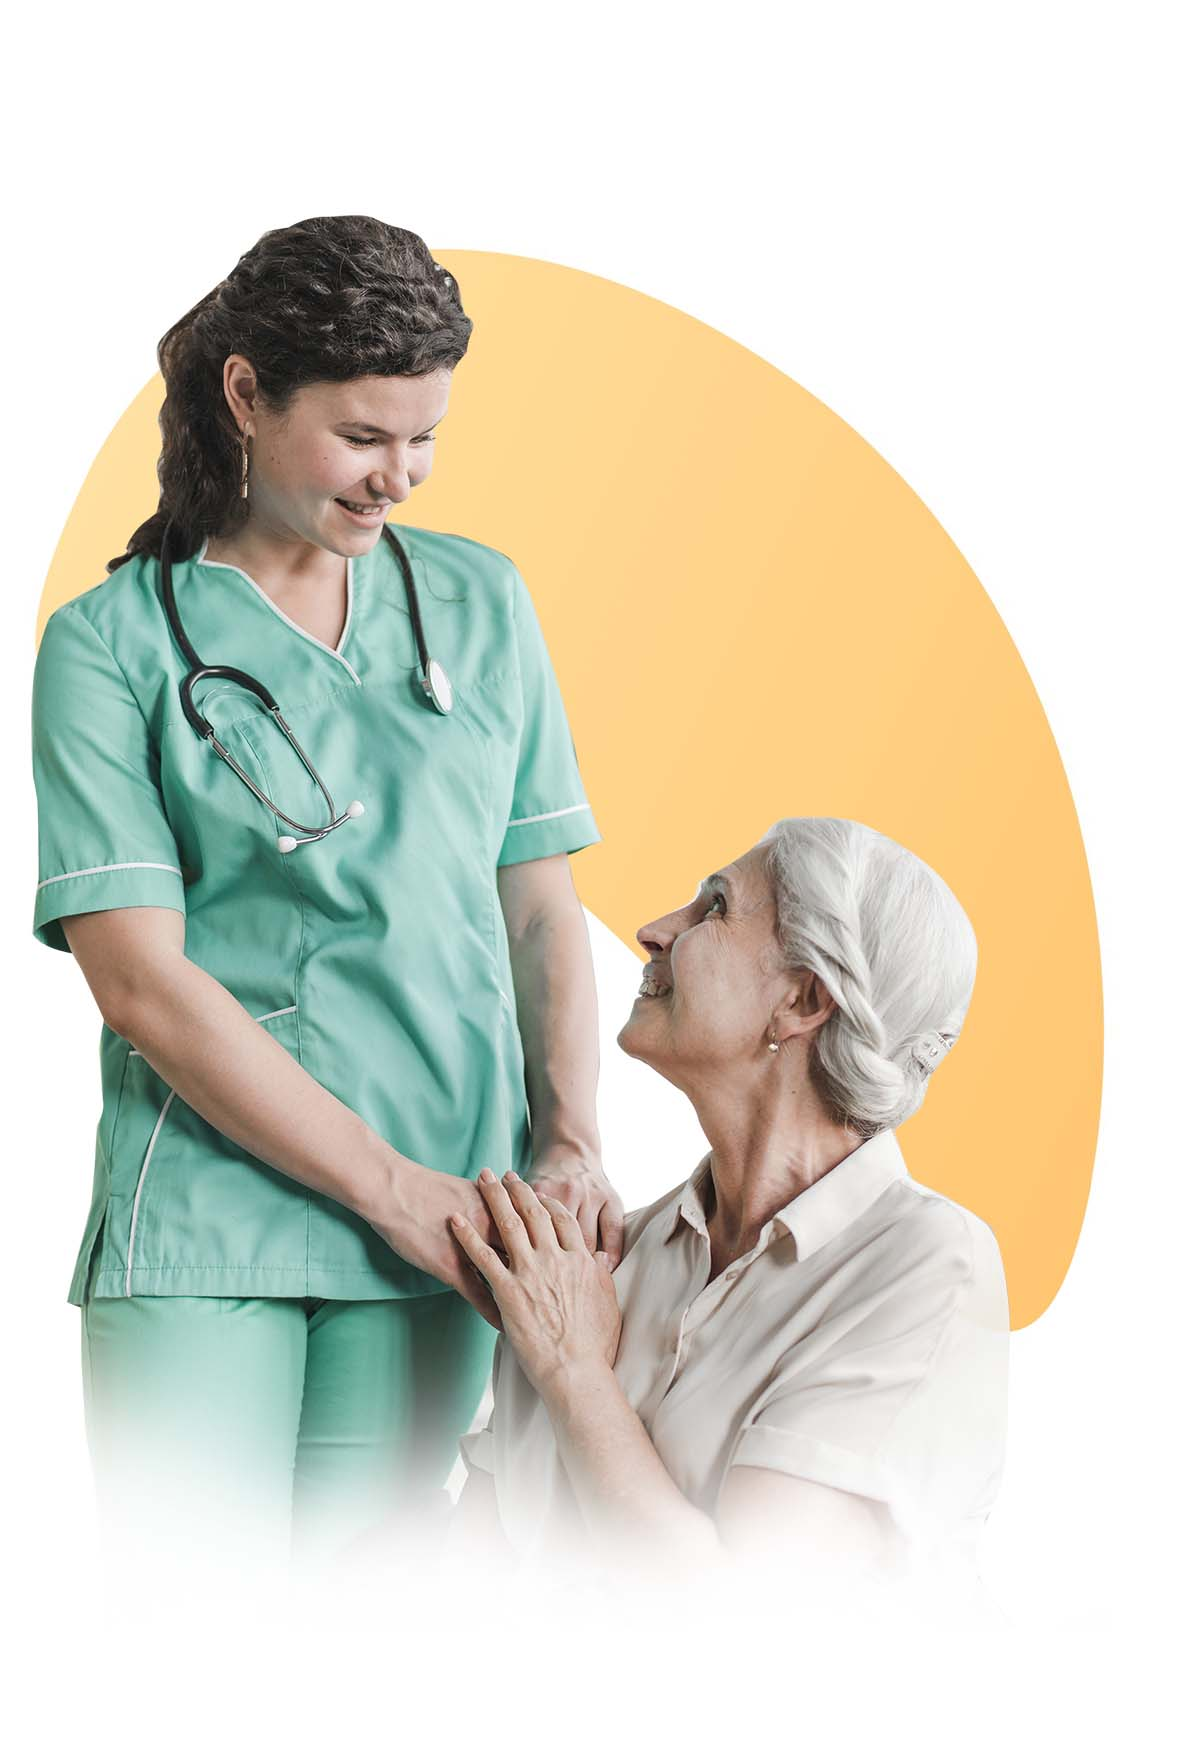 Nursing & Healthcare Assistants Recruitment